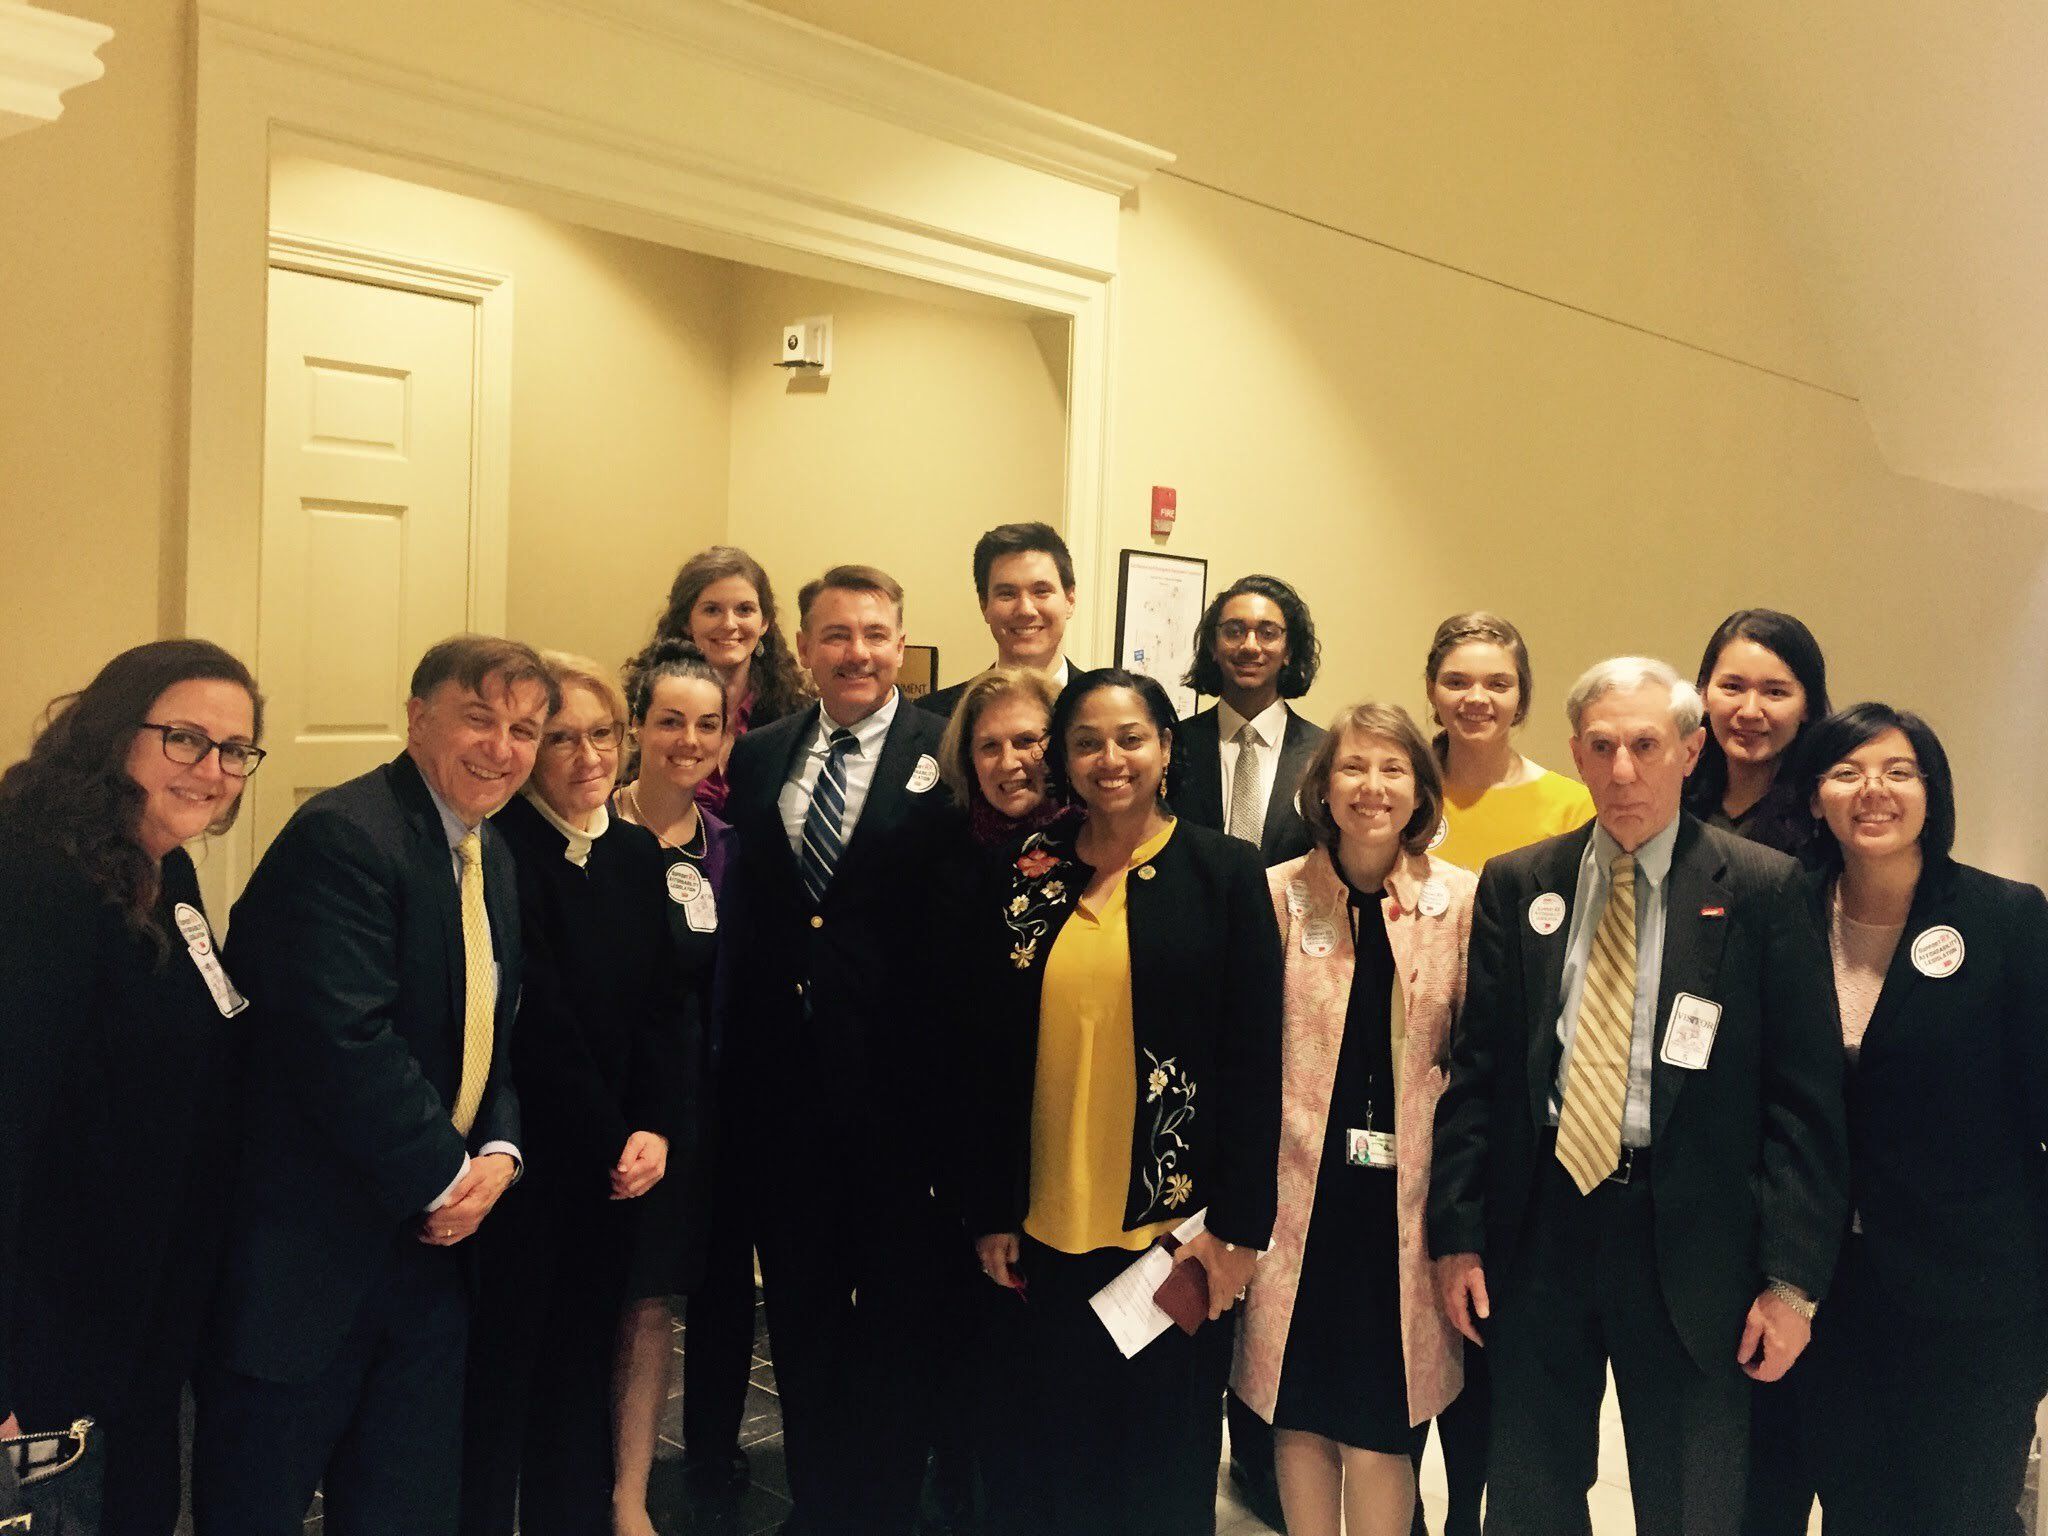 In March 2018, JHSPG Advocacy Chair Leah Cairns partnered with our state's largest health care consumer coalition, The Maryland Citizens Health Initiative, for an Advocacy Day in Annapolis regarding a state-level Drug Price Commission Bill